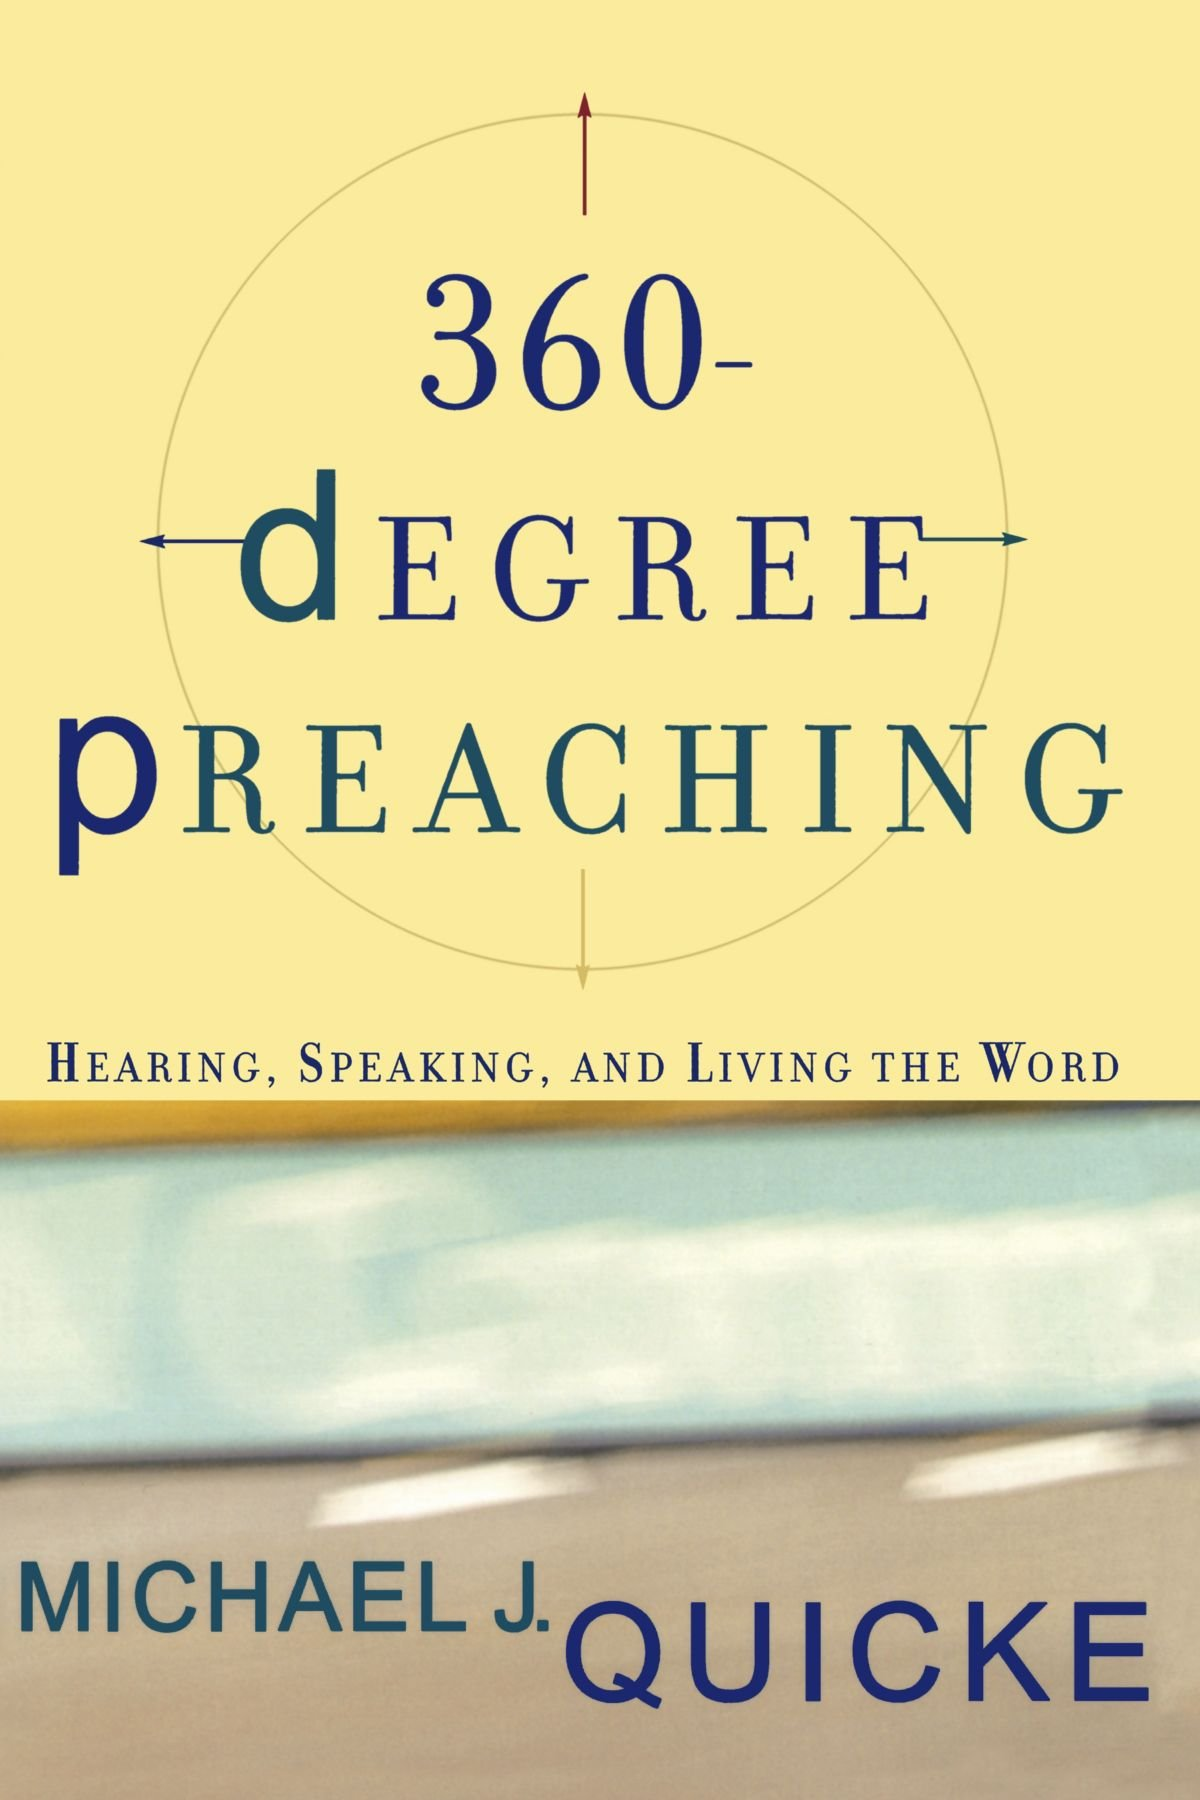 360-Degree Preaching: Hearing, Speaking, and Living the Word